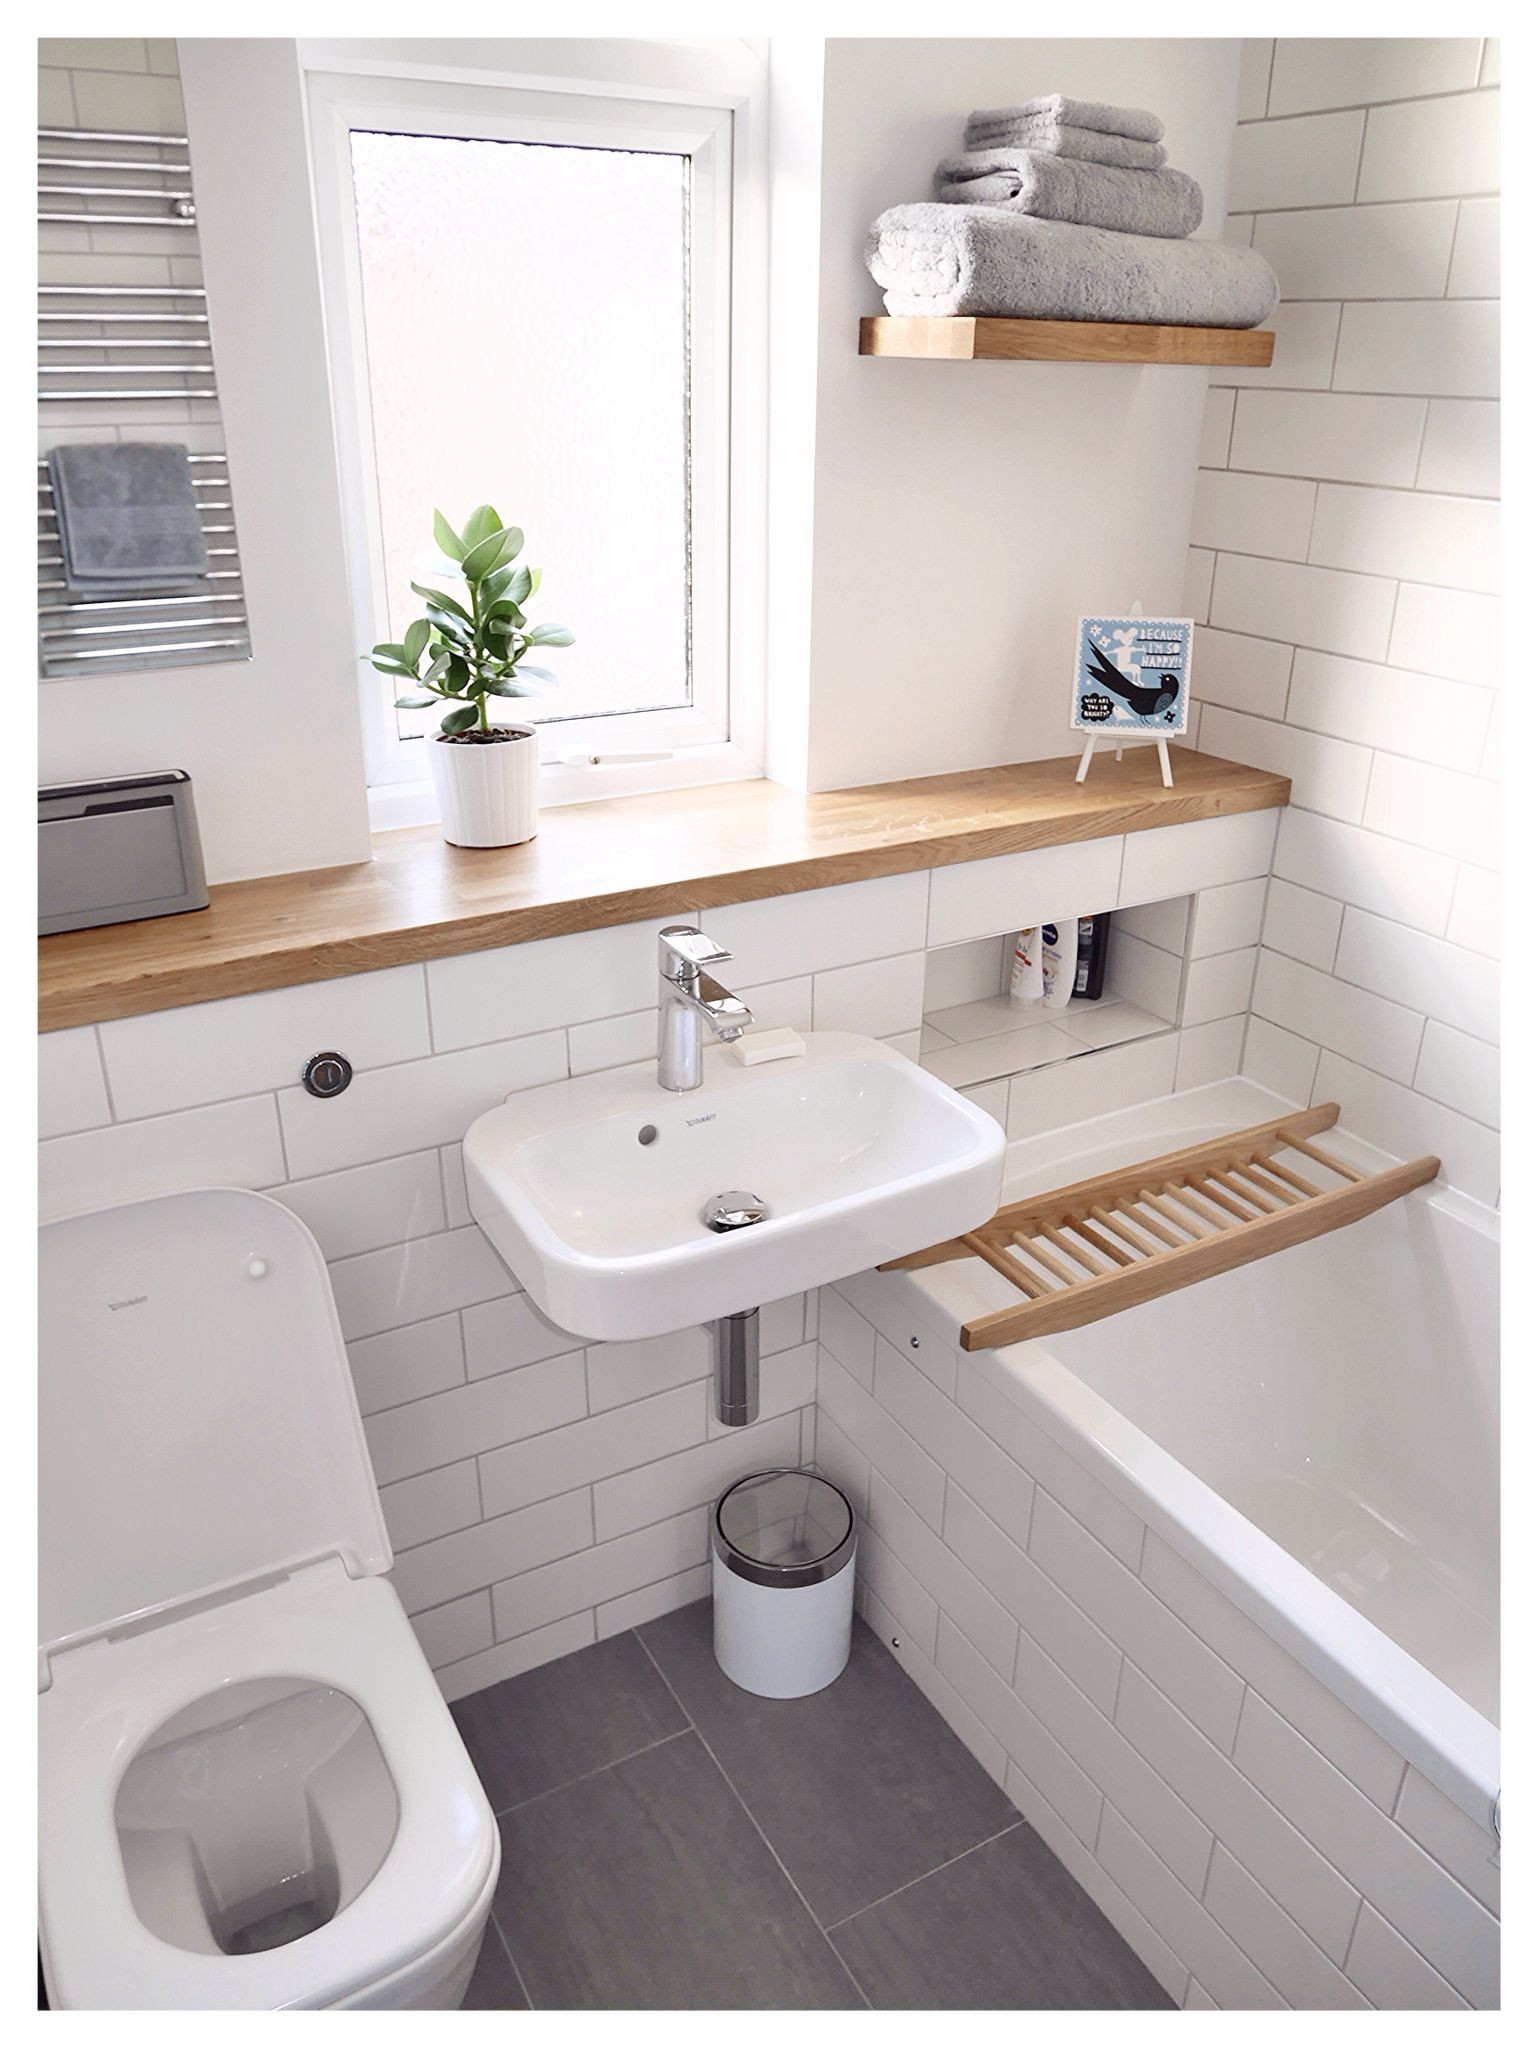 Best ideas about Small Bathroom Plans . Save or Pin Best 25 Ikea bathroom sinks ideas on Pinterest Now.